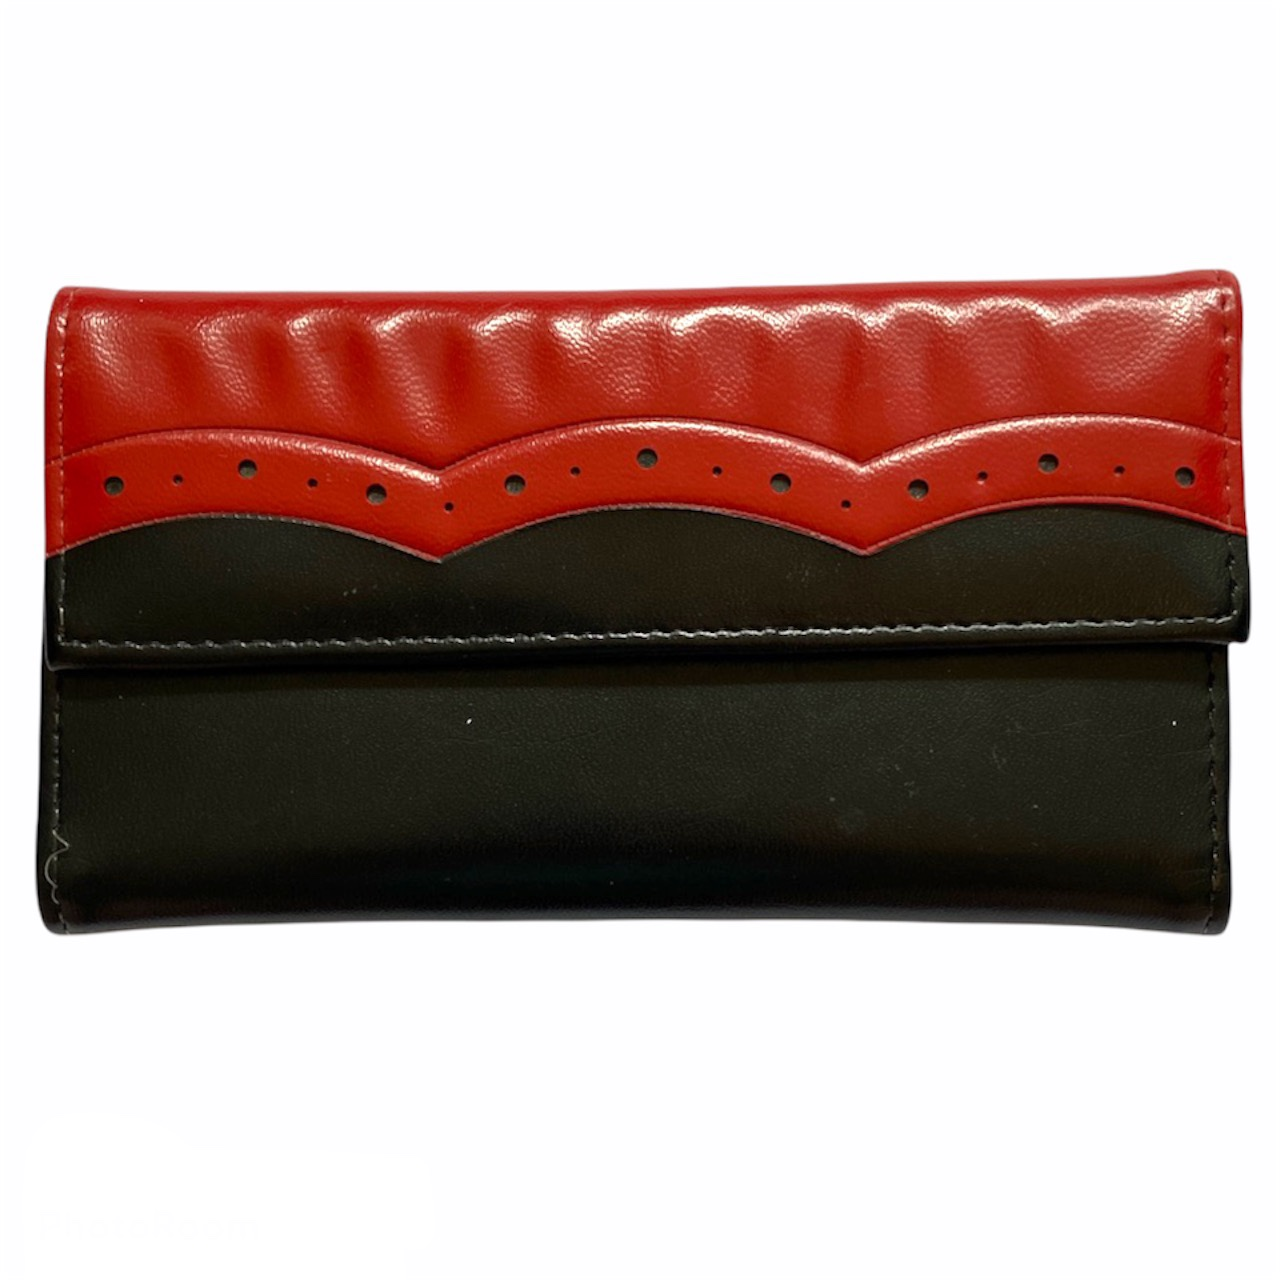 Product Image 1 - *Glossy red and black tri-fold